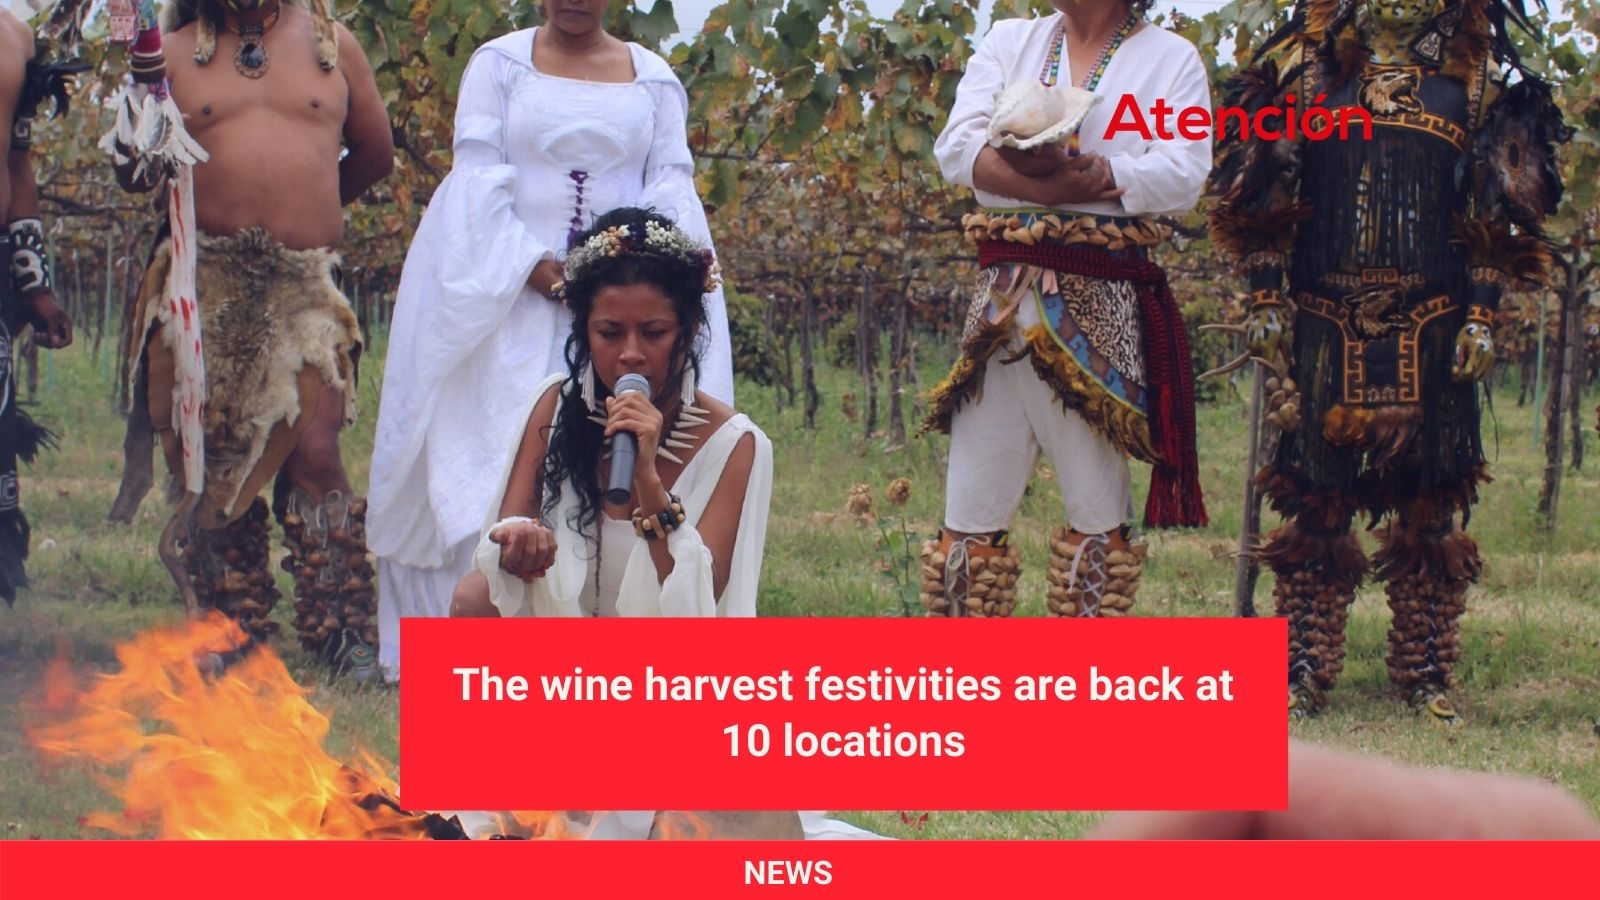 The-wine-harvest-festivities-are-back-at-10-locations.jpg